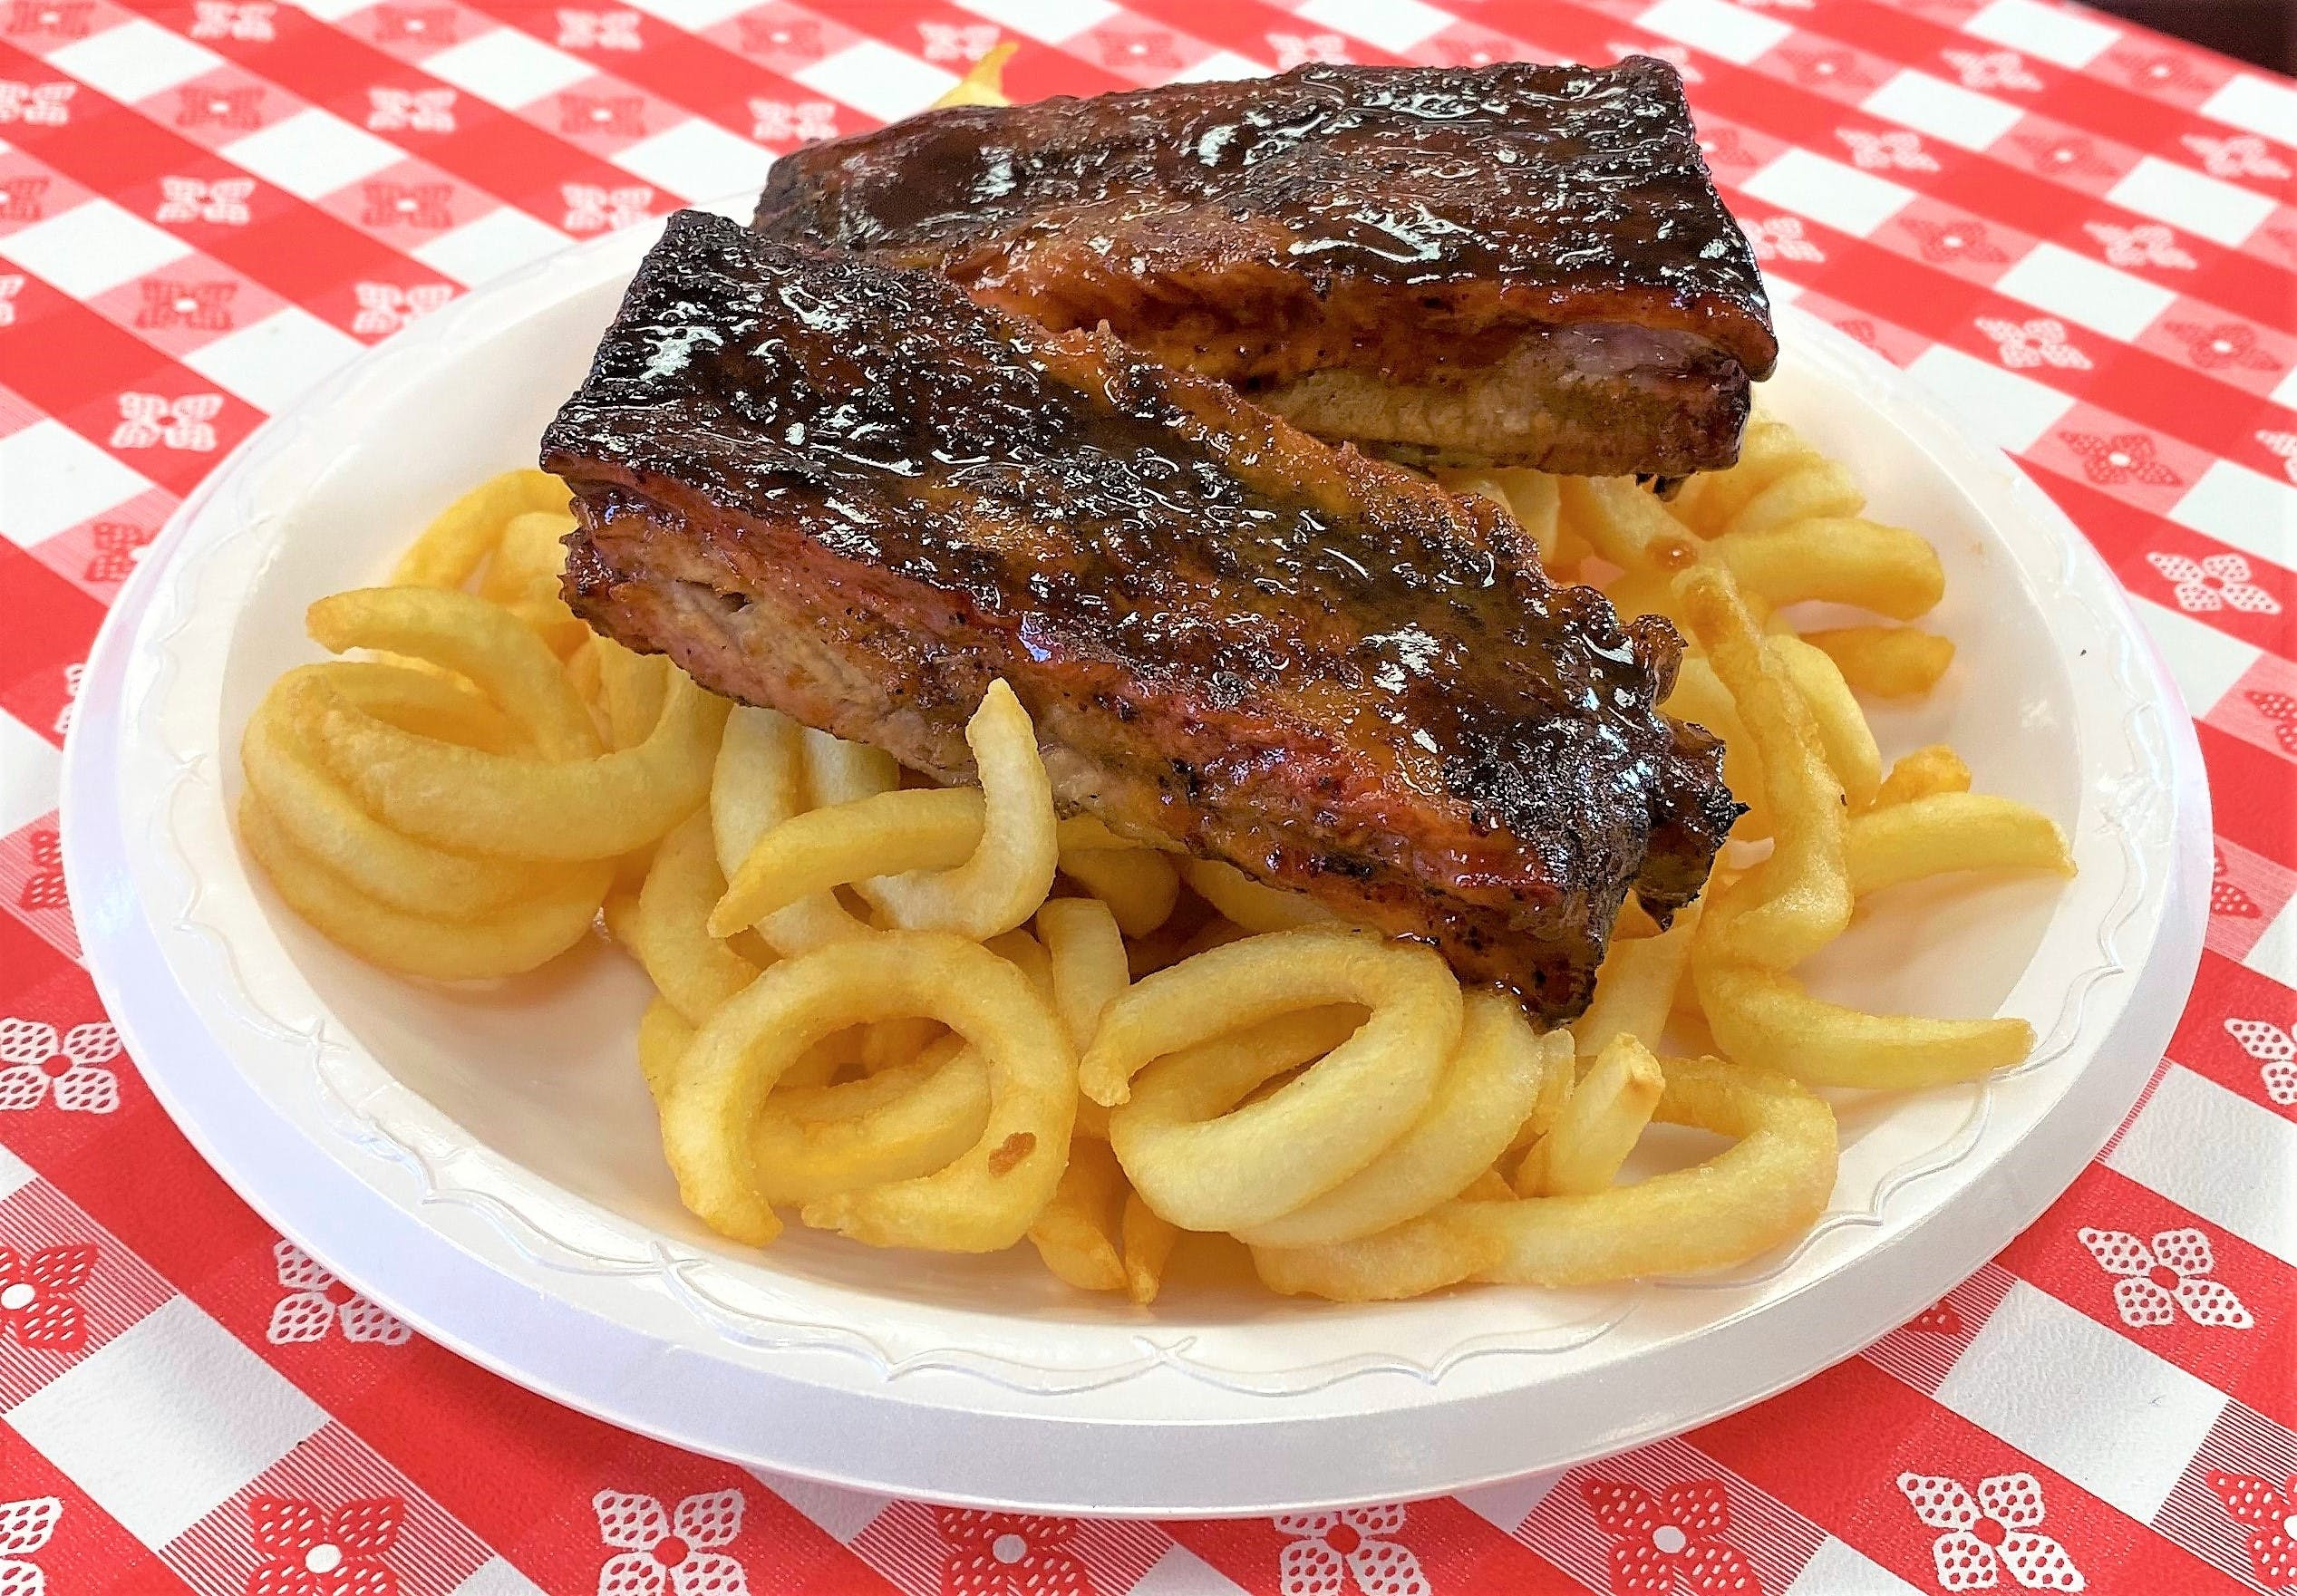 Rib Snack Basket from Hog Wild Pit BBQ & Catering in Lawrence, KS